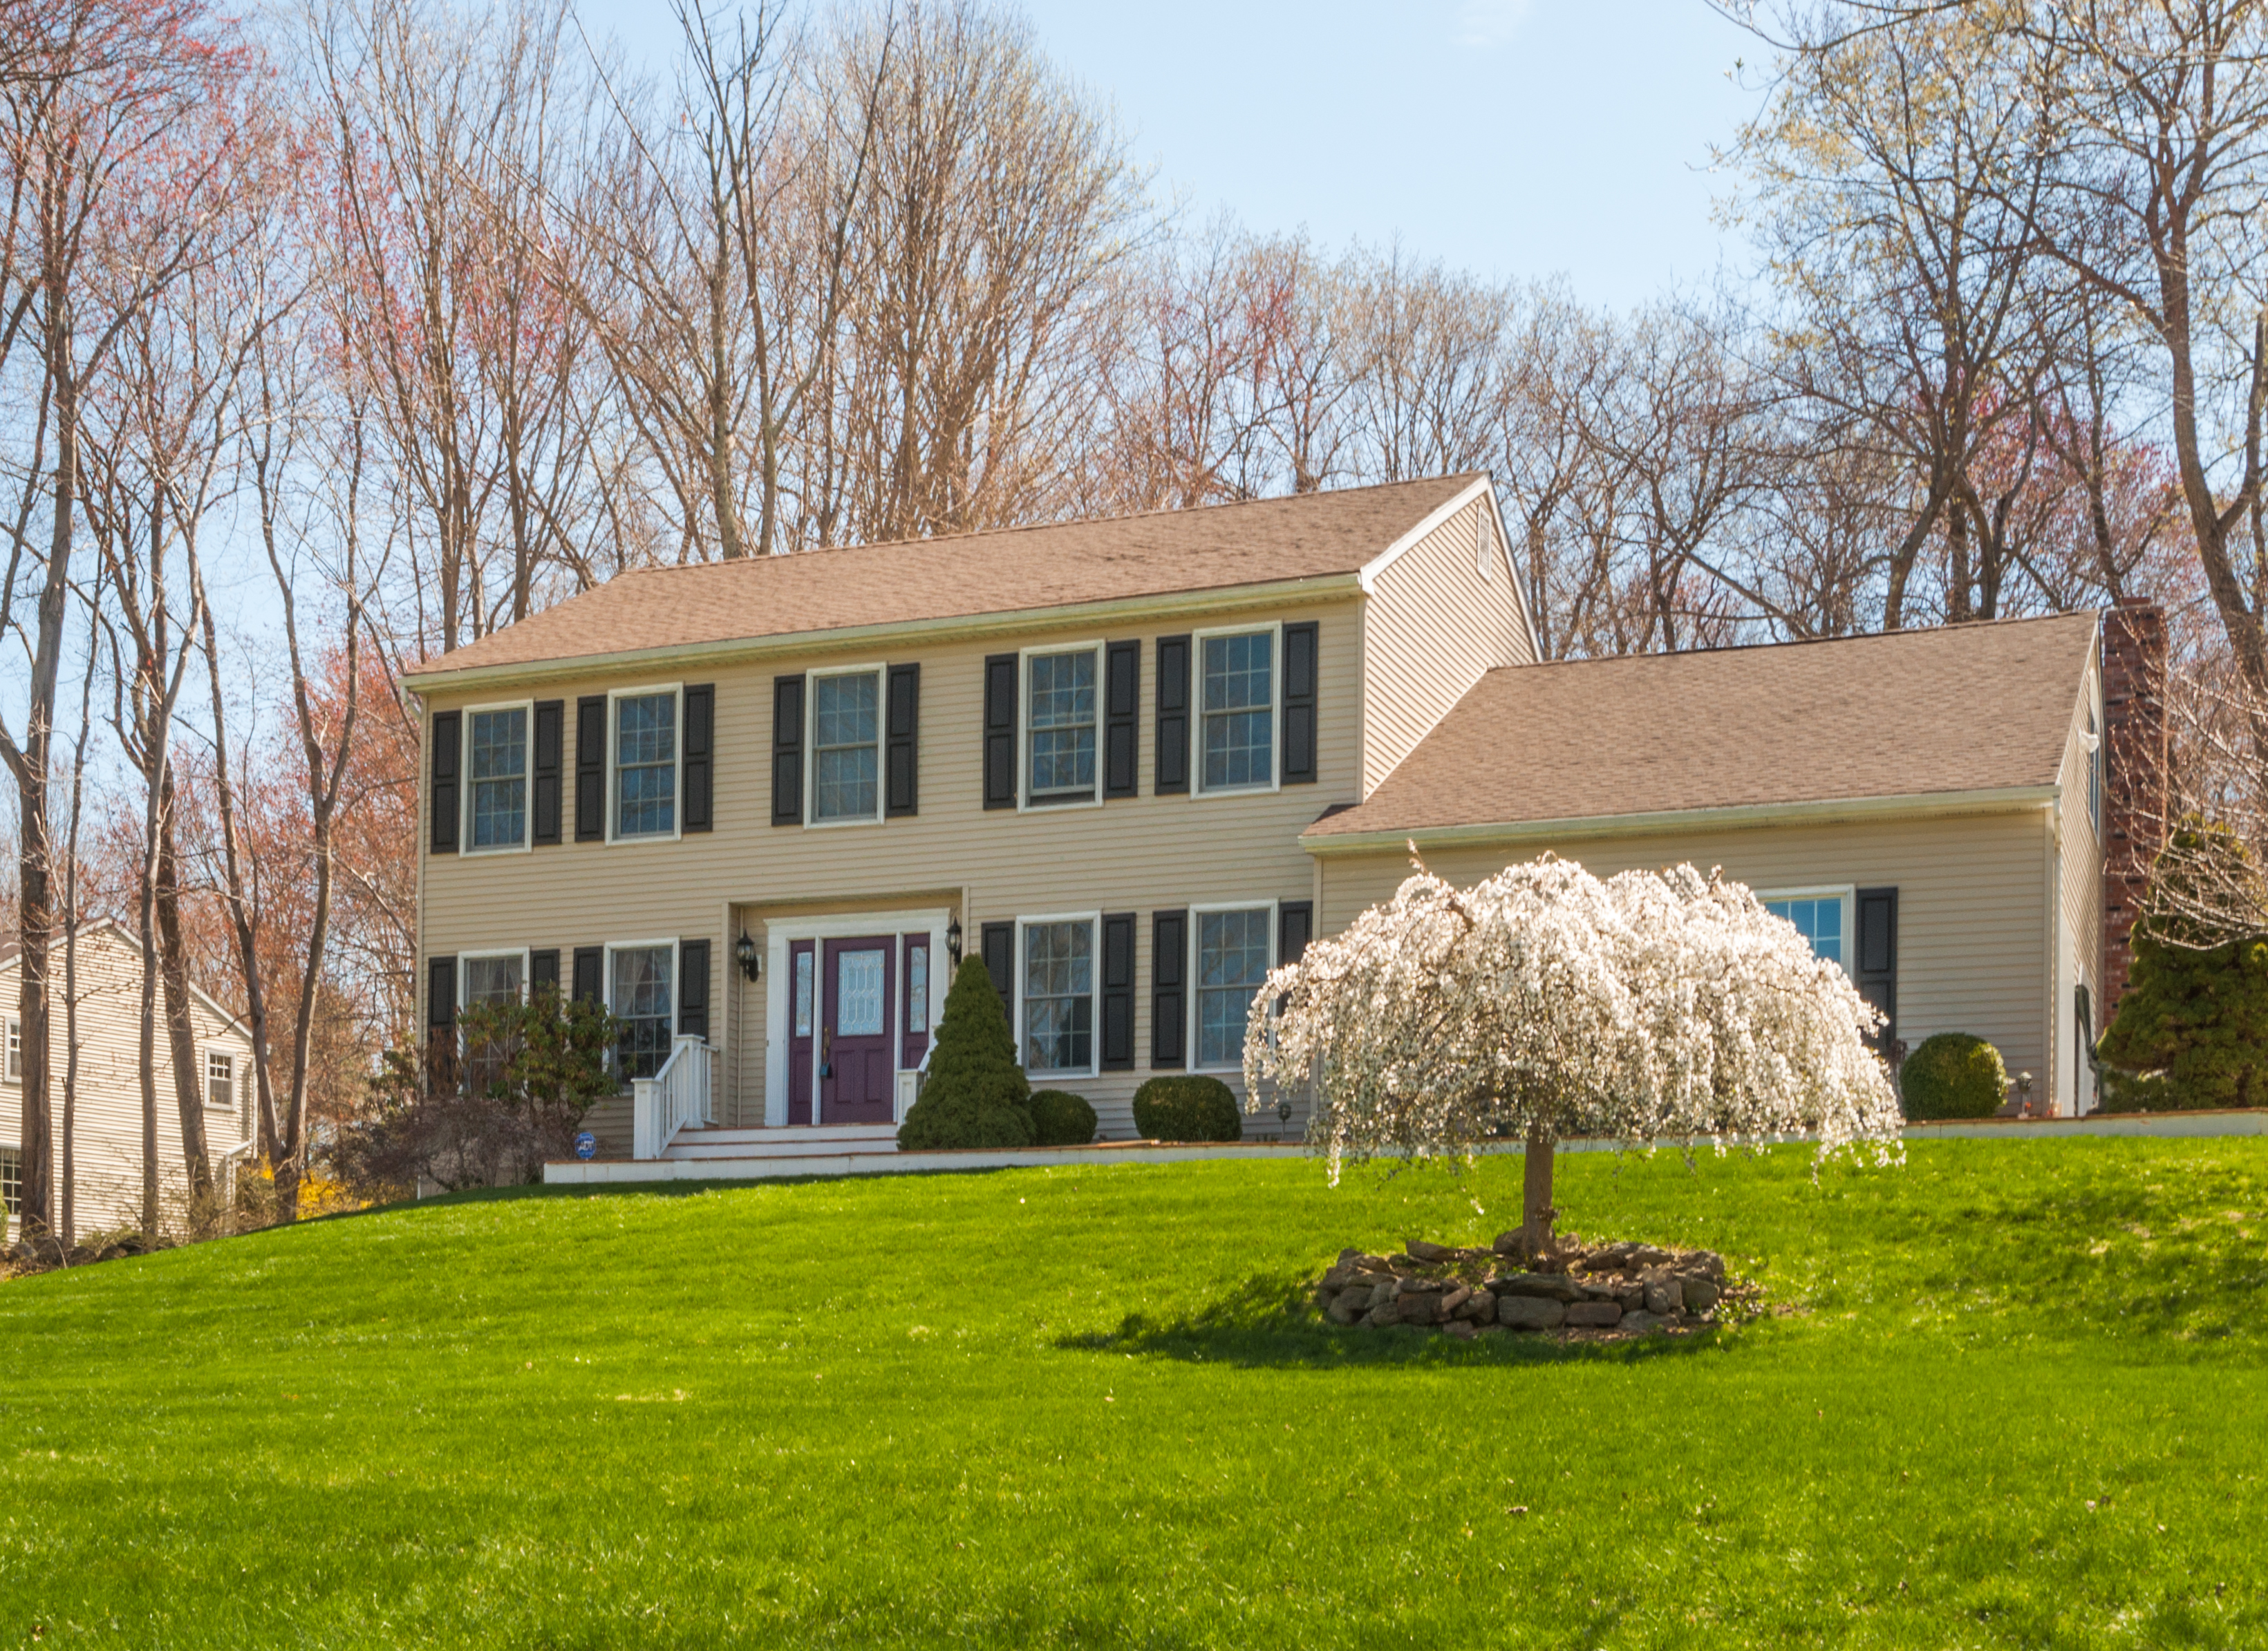 Single Family Home for Sale at Spacious Colonial 12 Old Hayrake Road Danbury, Connecticut 06811 United States